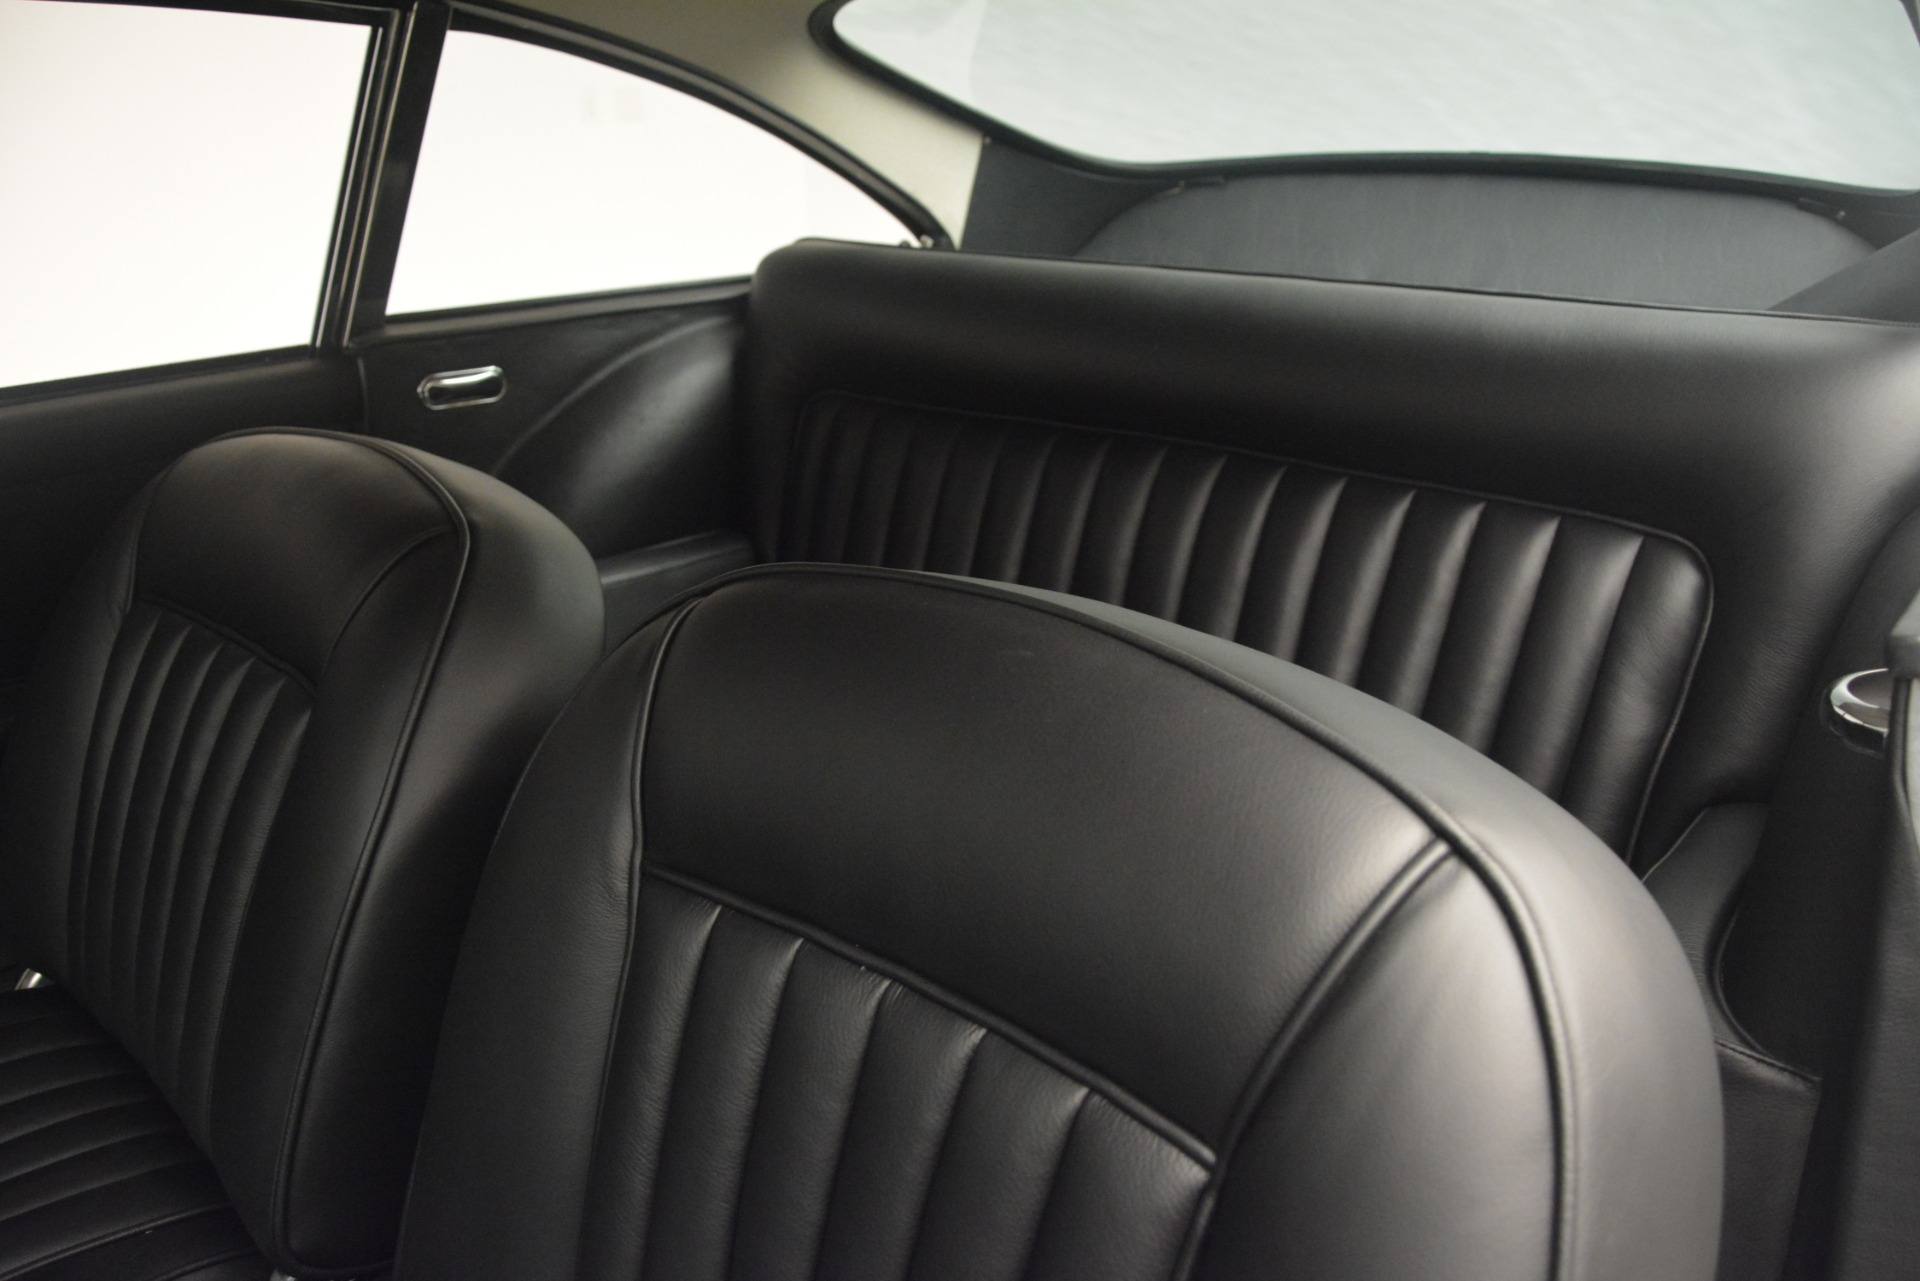 Used 1961 Aston Martin DB4 Series IV Coupe For Sale In Greenwich, CT 3186_p23